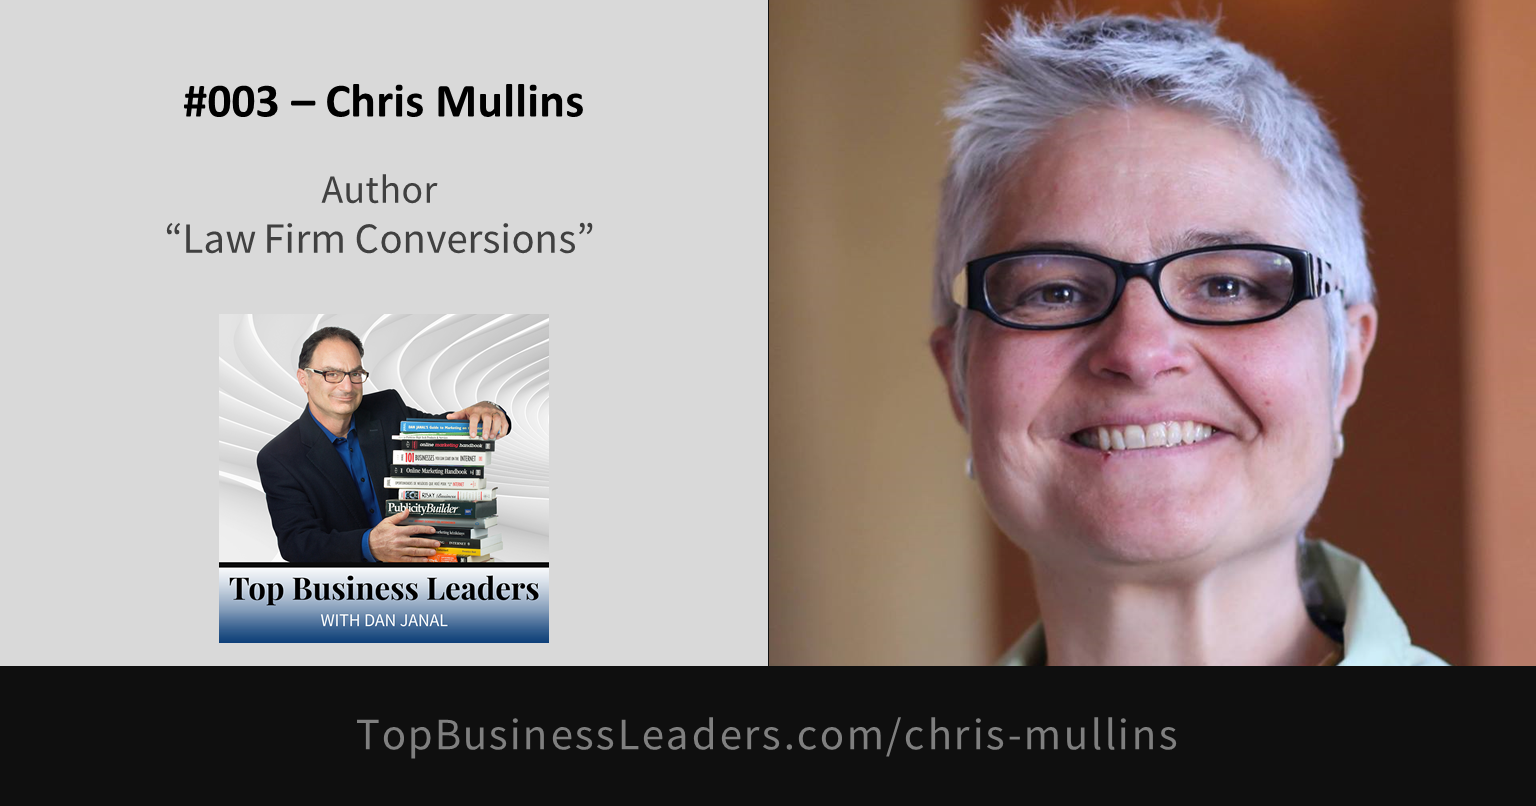 chris-mullins-author-law-firm-conversions